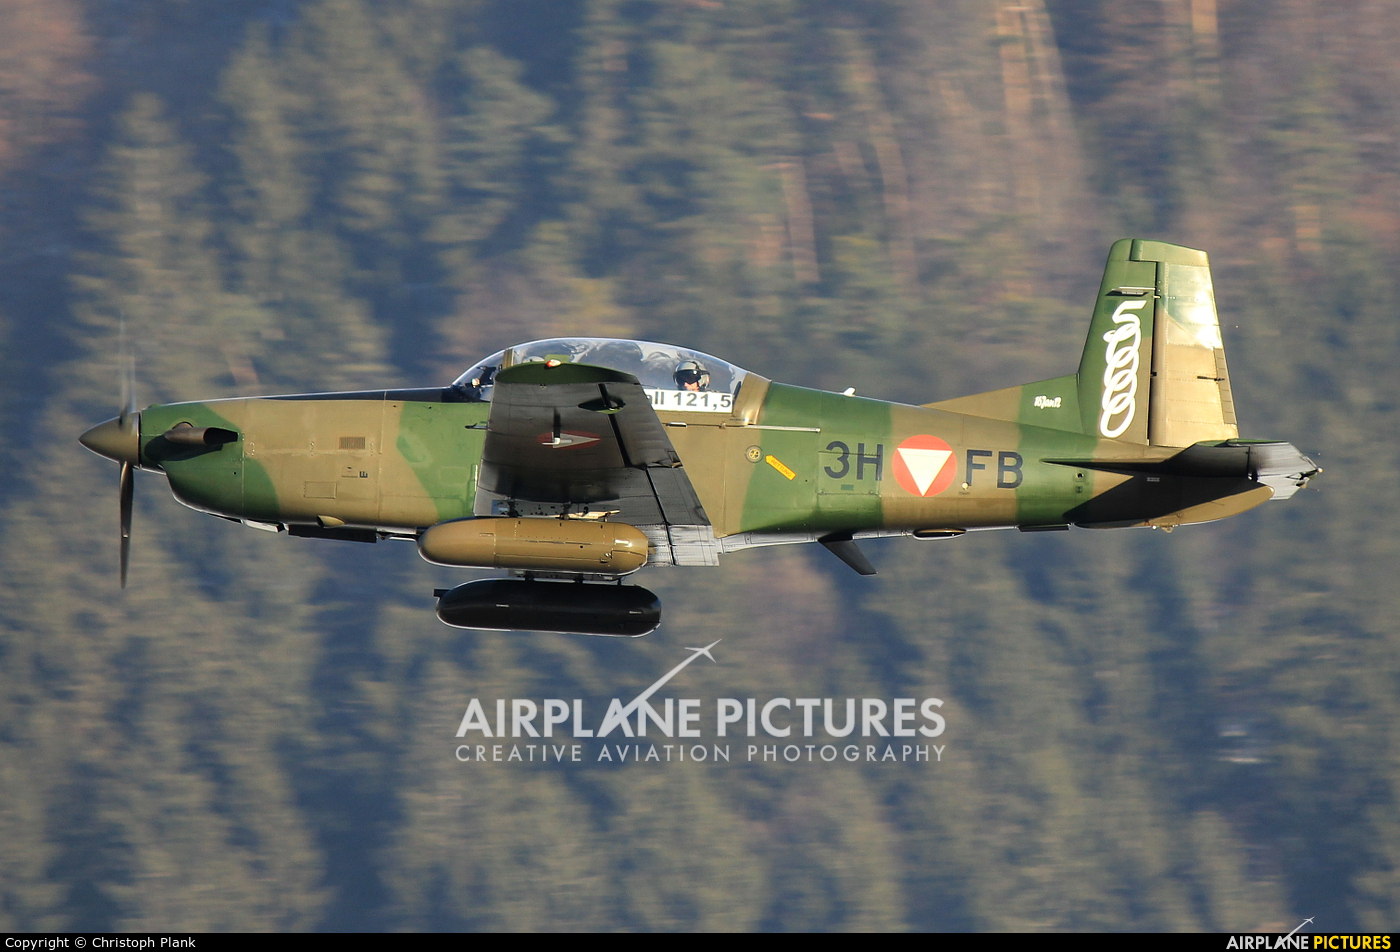 Austria - Air Force 3H-FB aircraft at Innsbruck